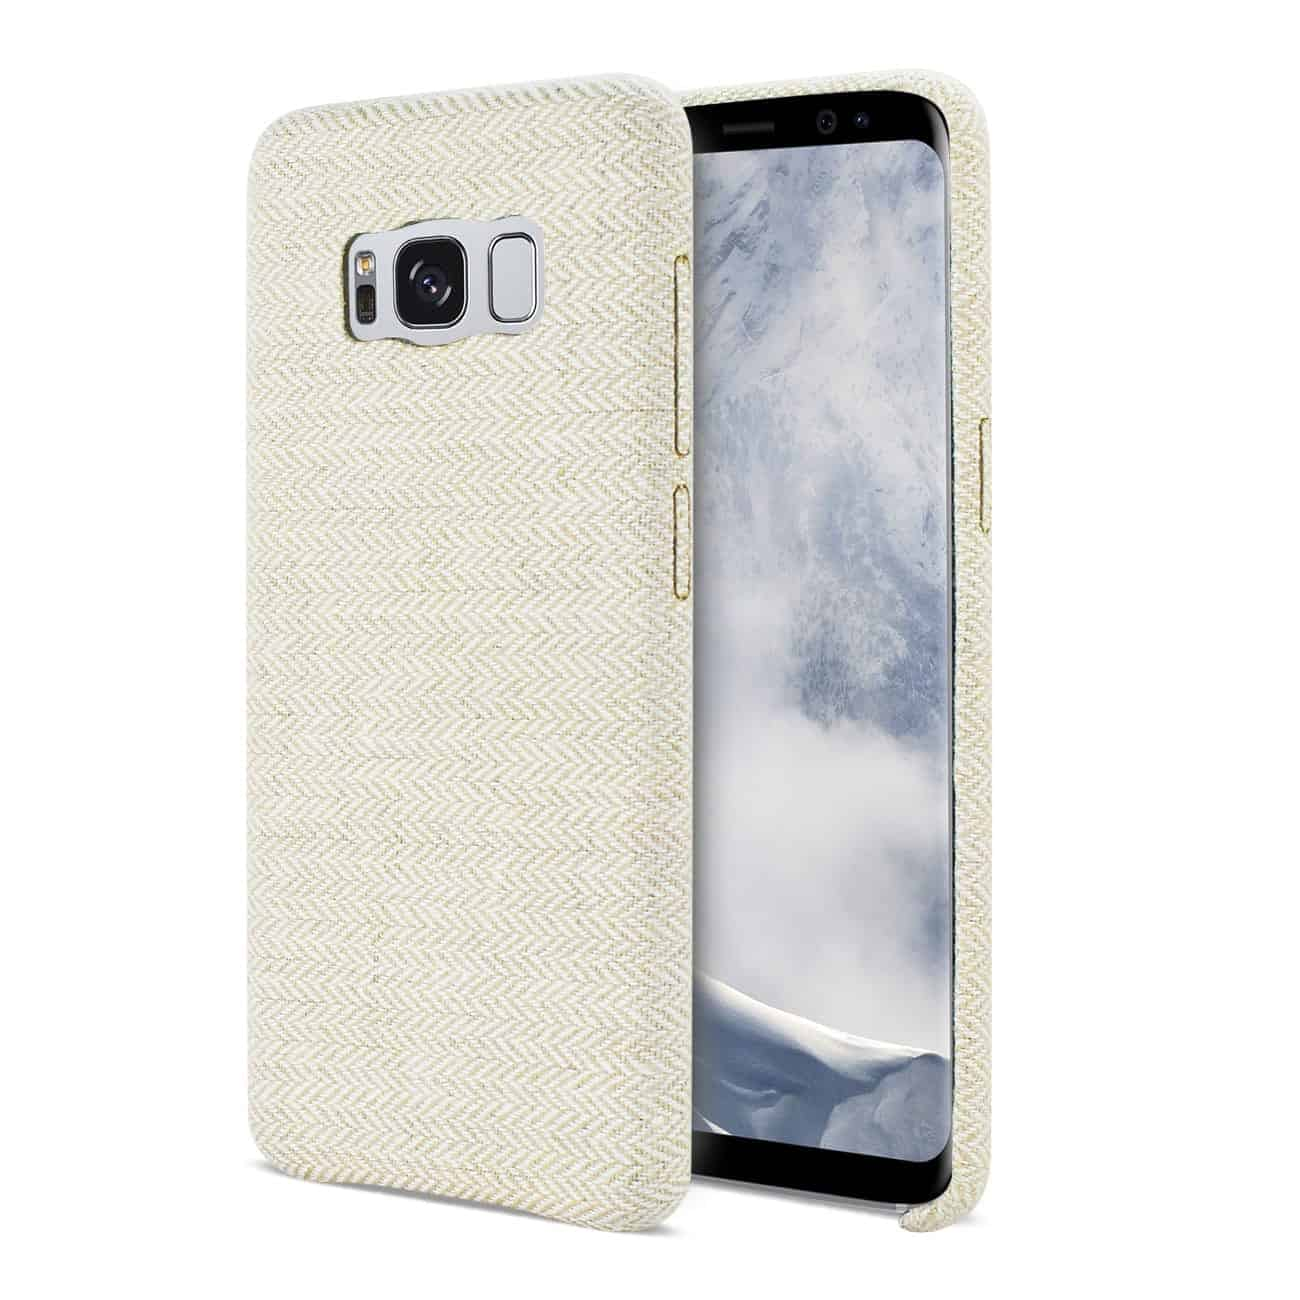 SAMSUNG GALAXY S8 EDGE HERRINGBONE FABRIC IN BEIGE